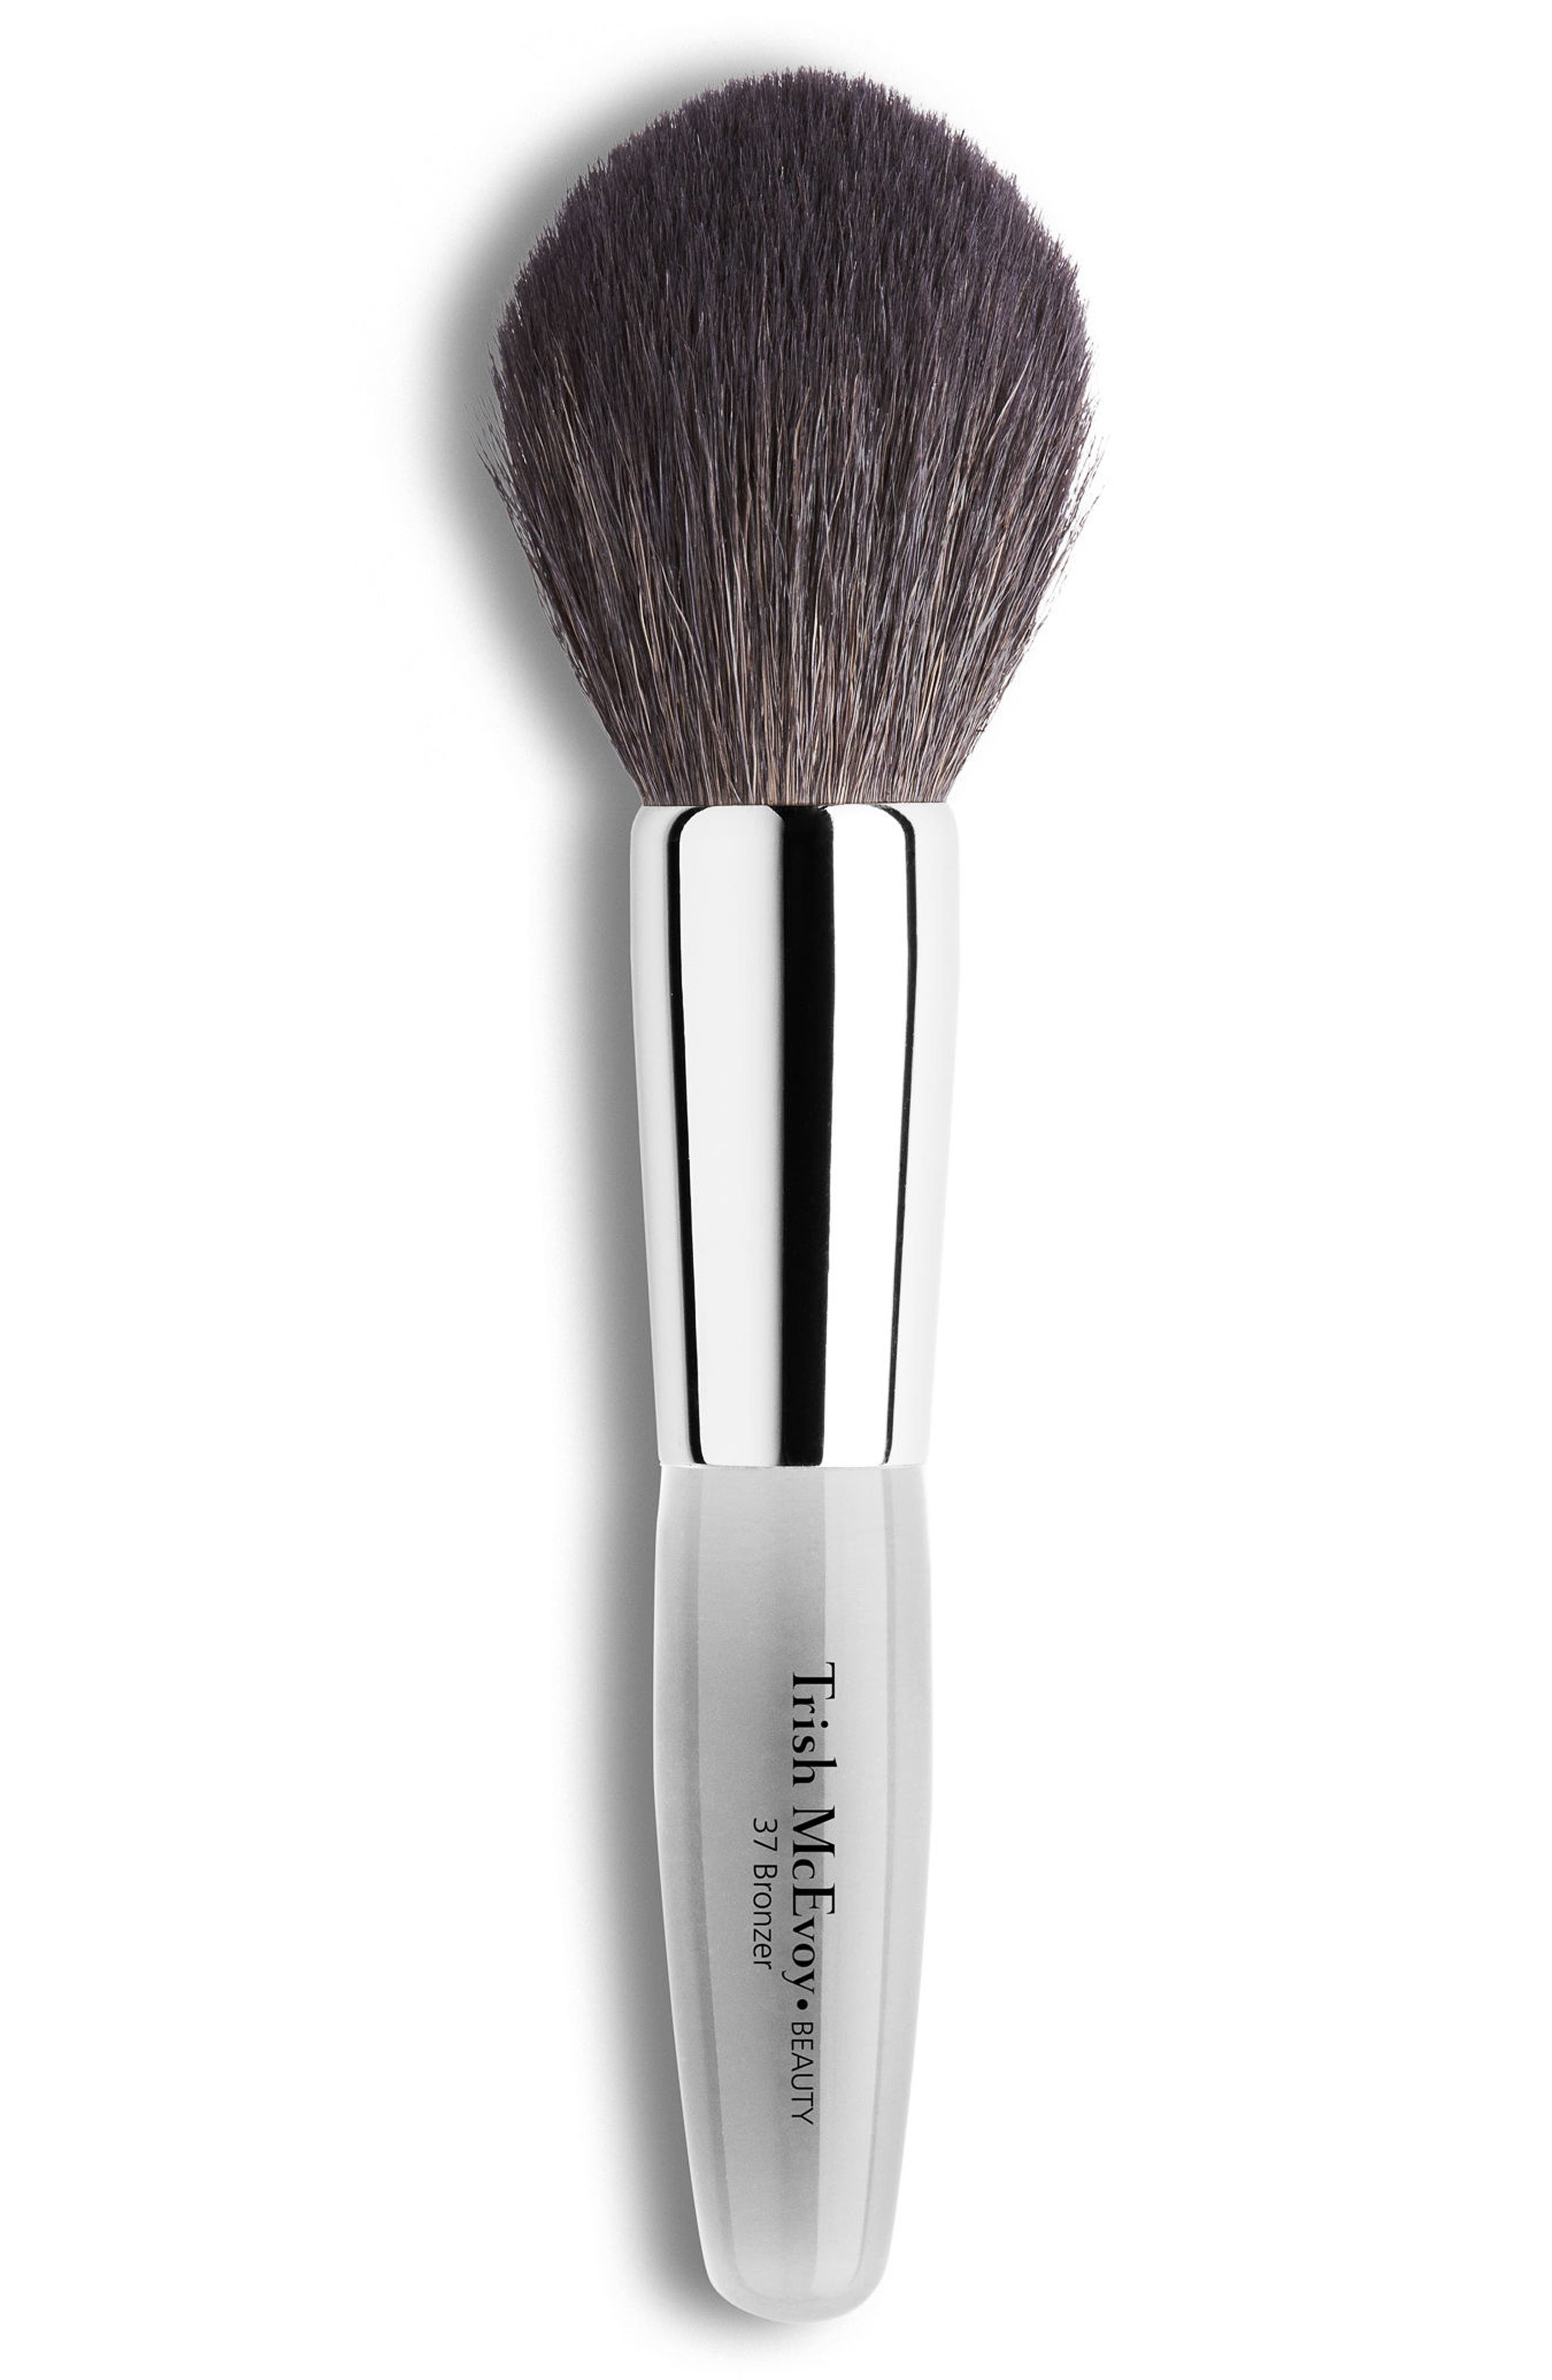 #37 Bronzer Brush,                             Main thumbnail 1, color,                             NO COLOR